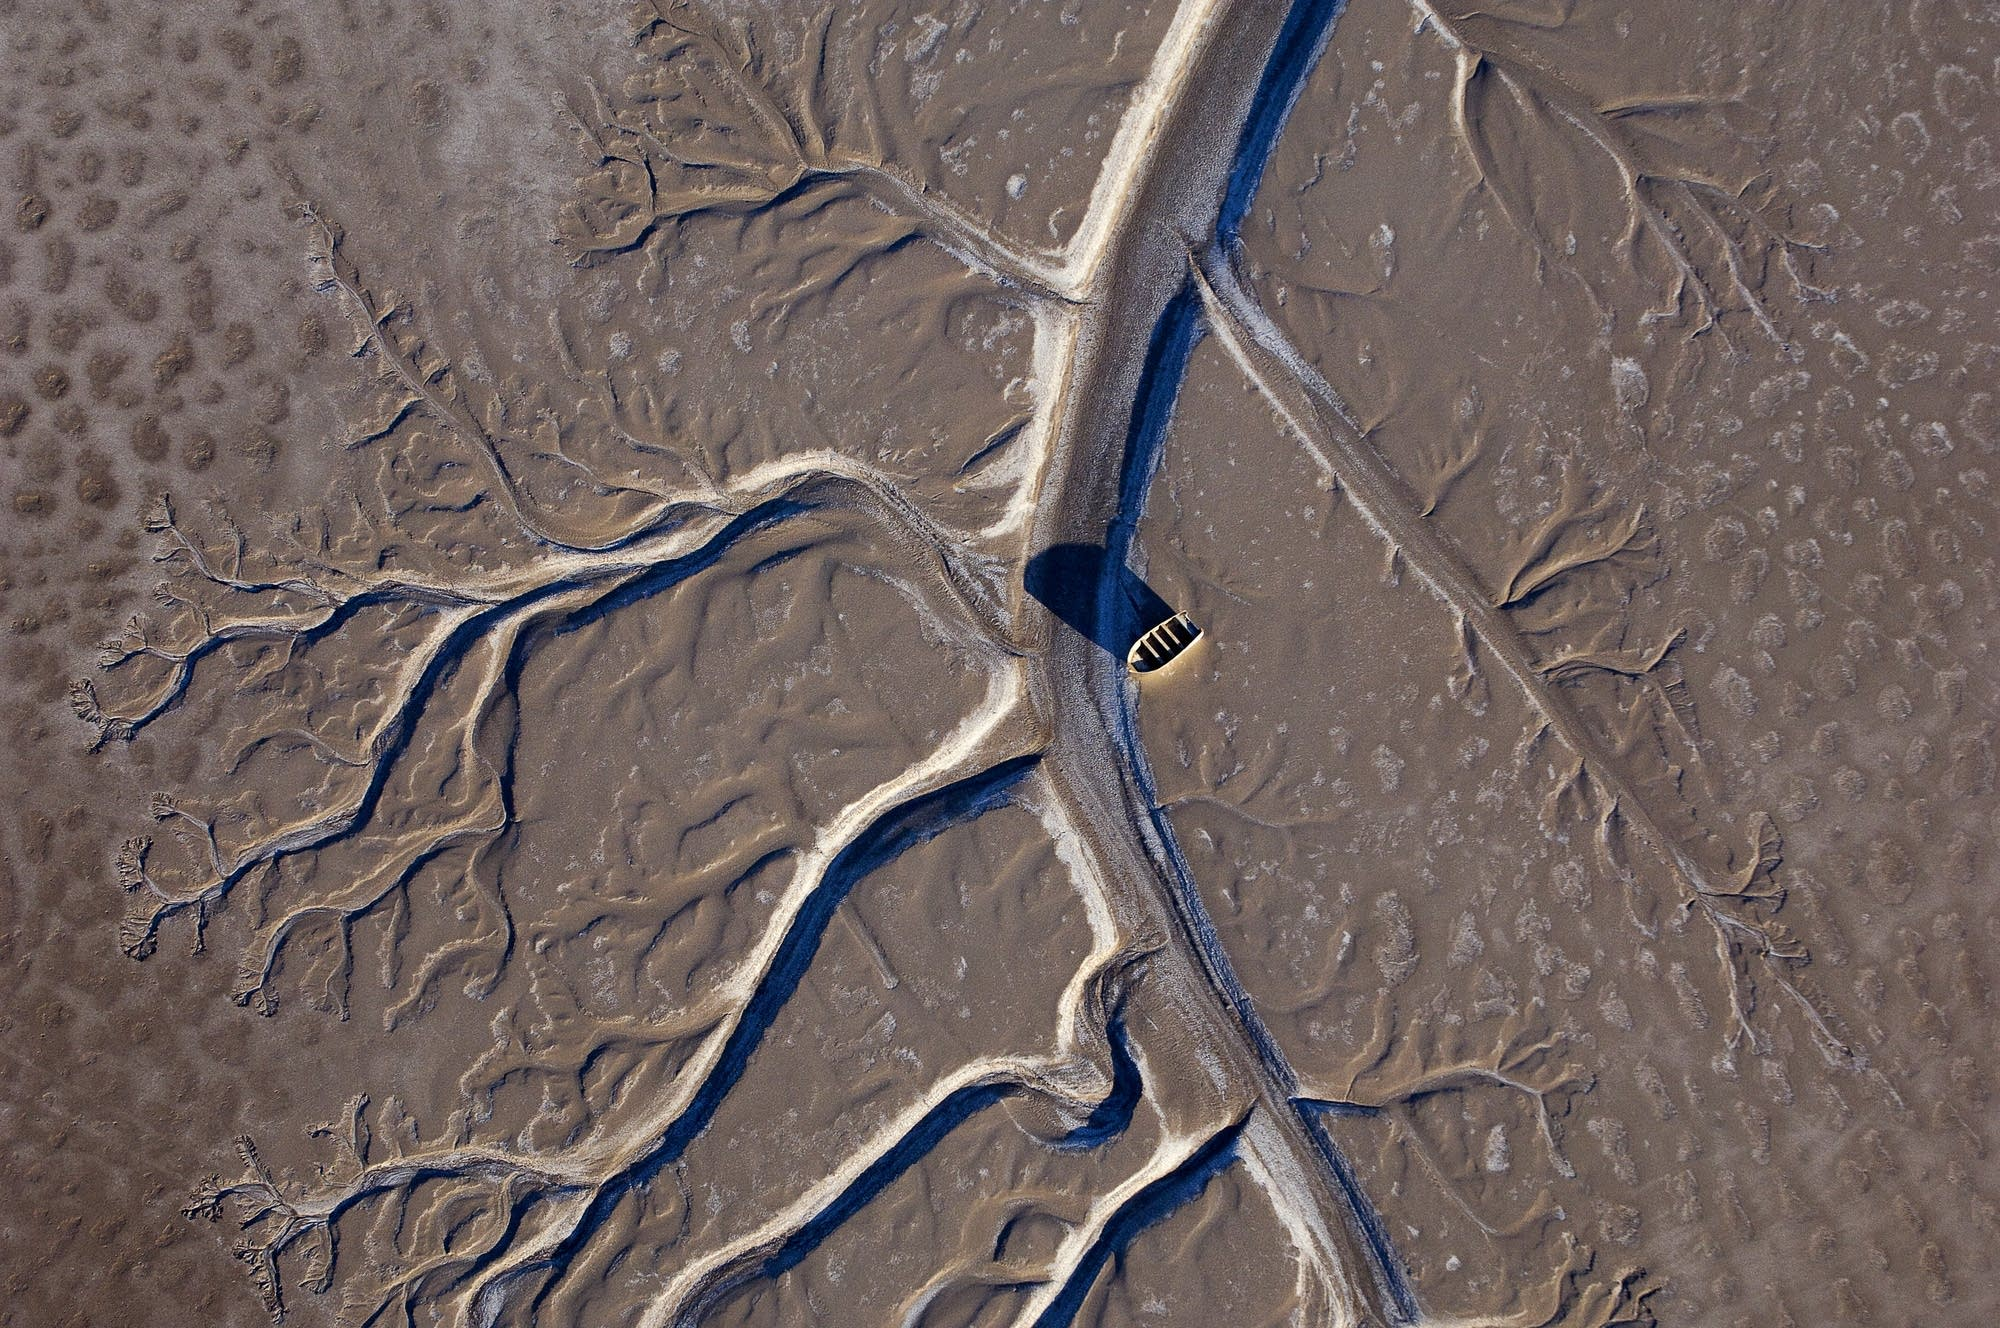 An abandoned boat on the Colorado River delta.